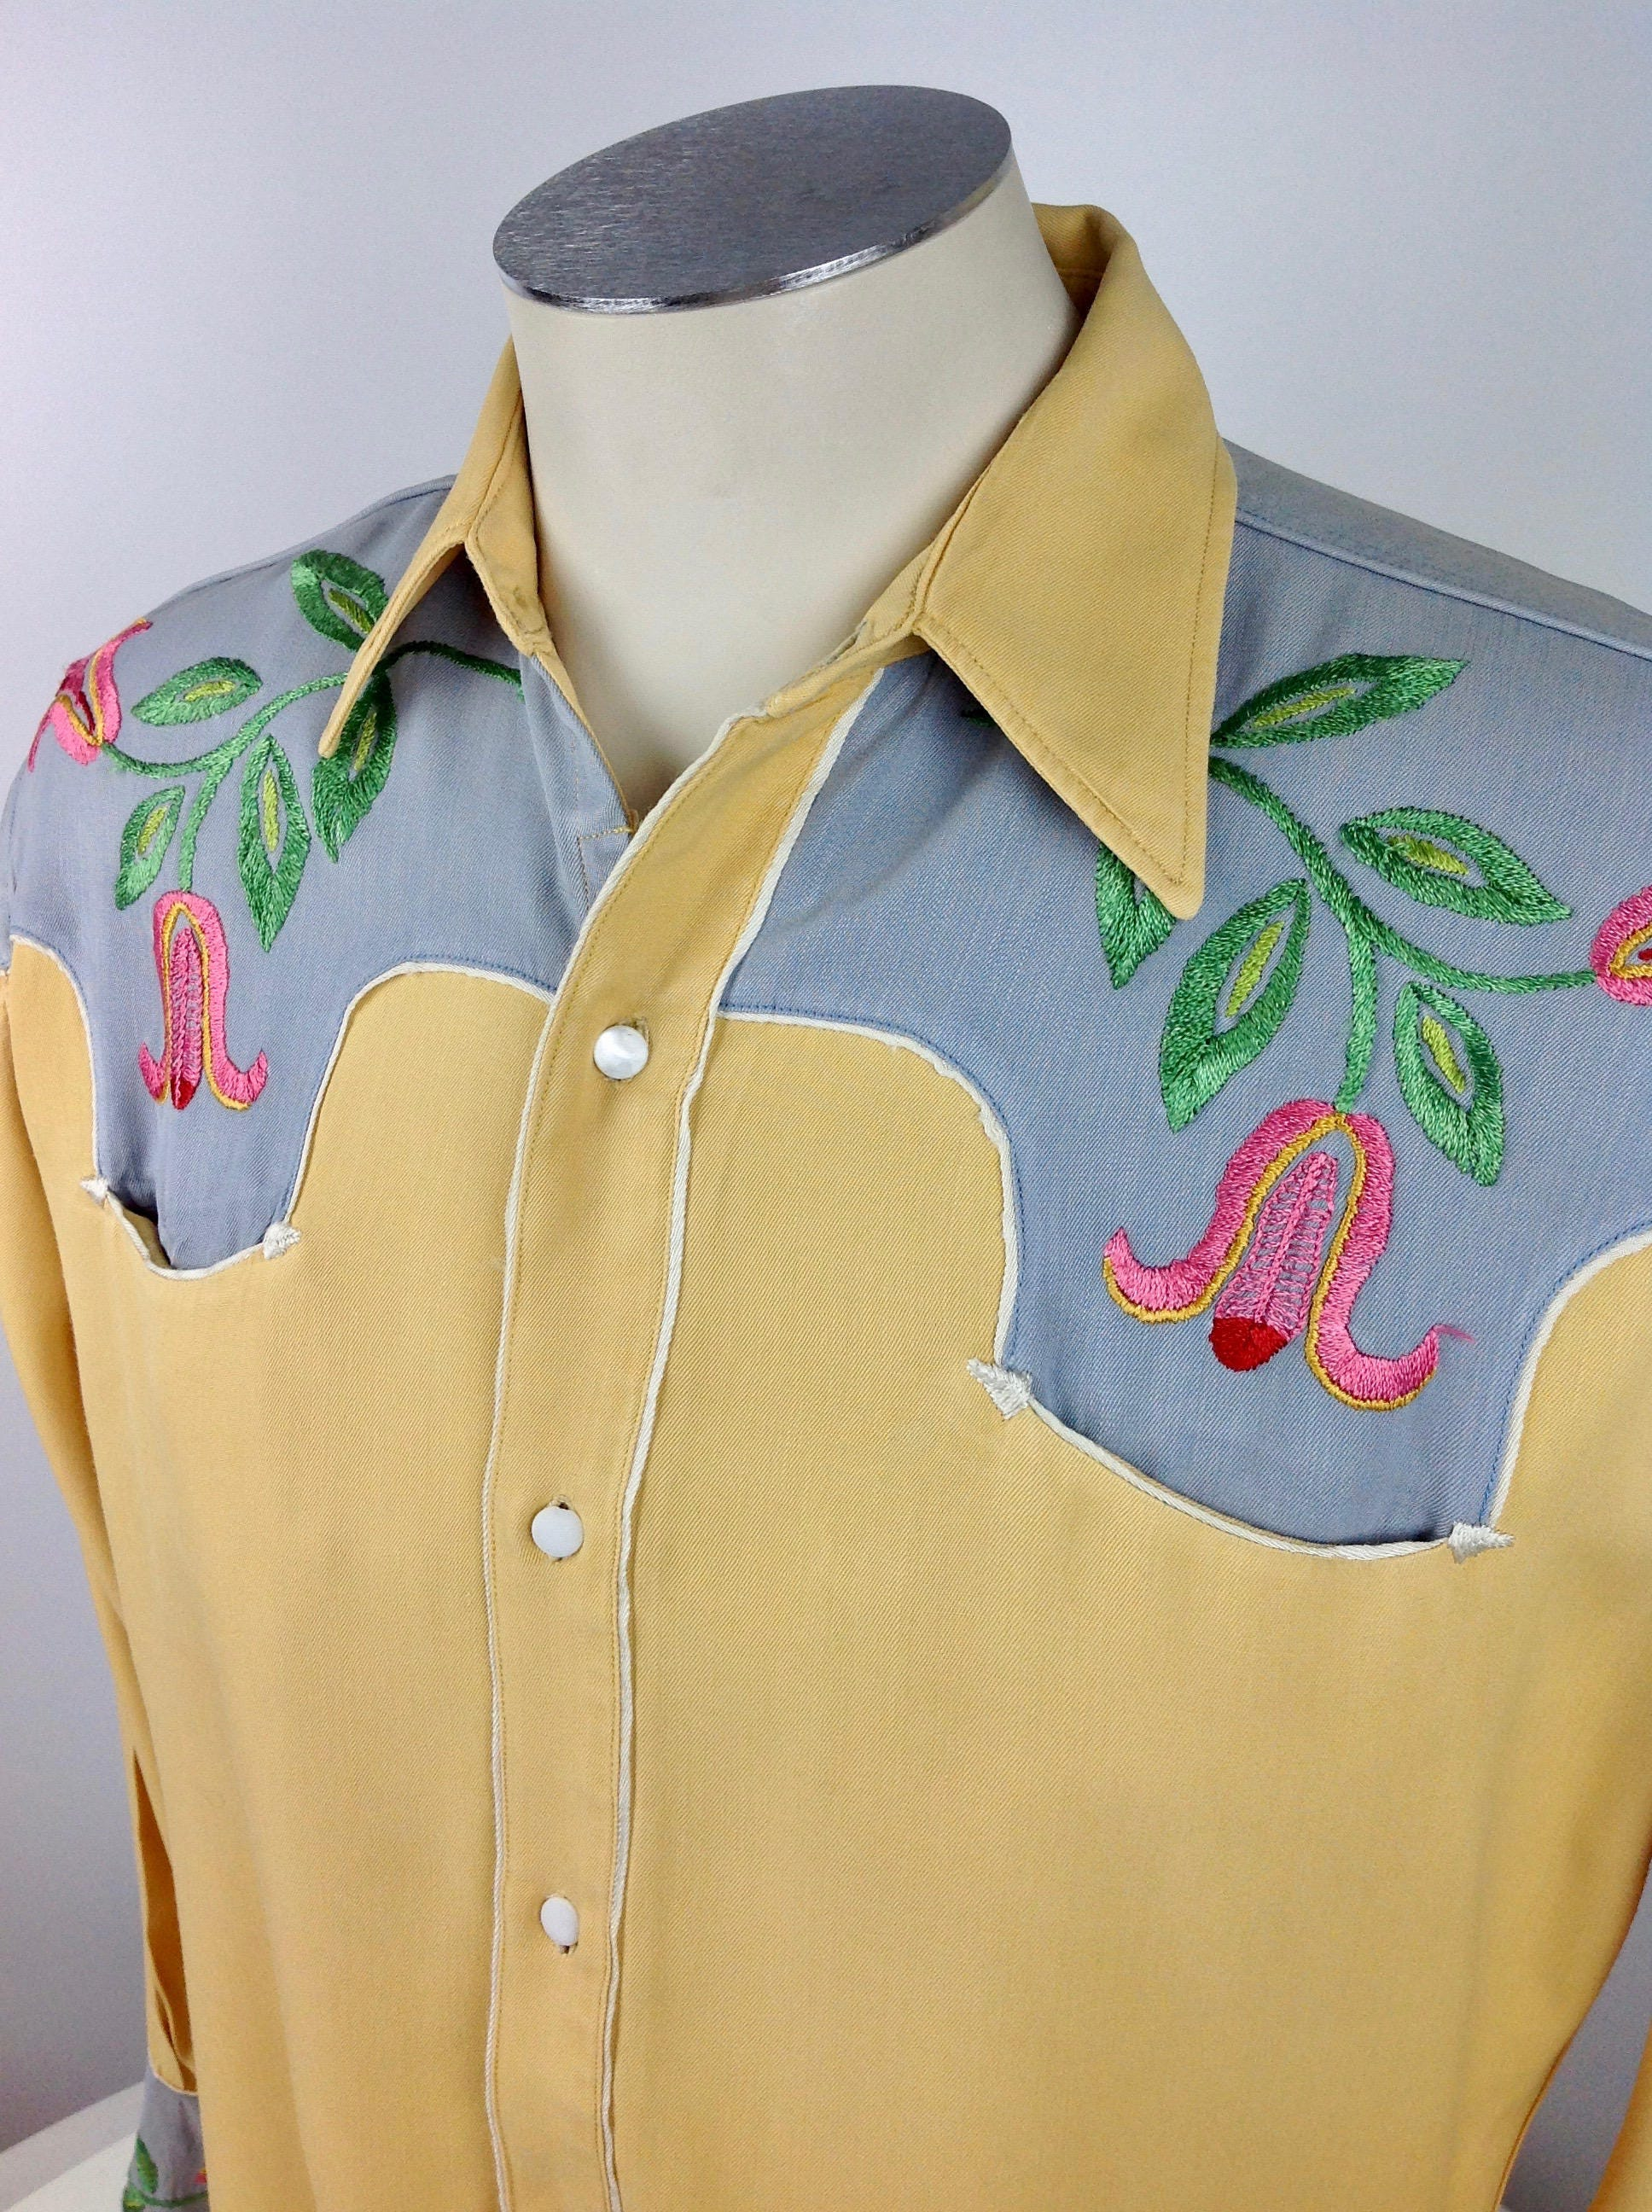 1940s Men's Shirts, Sweaters, Vests 1930s 40s Western Cowboy Shirt - Two-Tone Chain Stitch Embroidery Mother Of Pearl Buttons Mens Large $22.95 AT vintagedancer.com